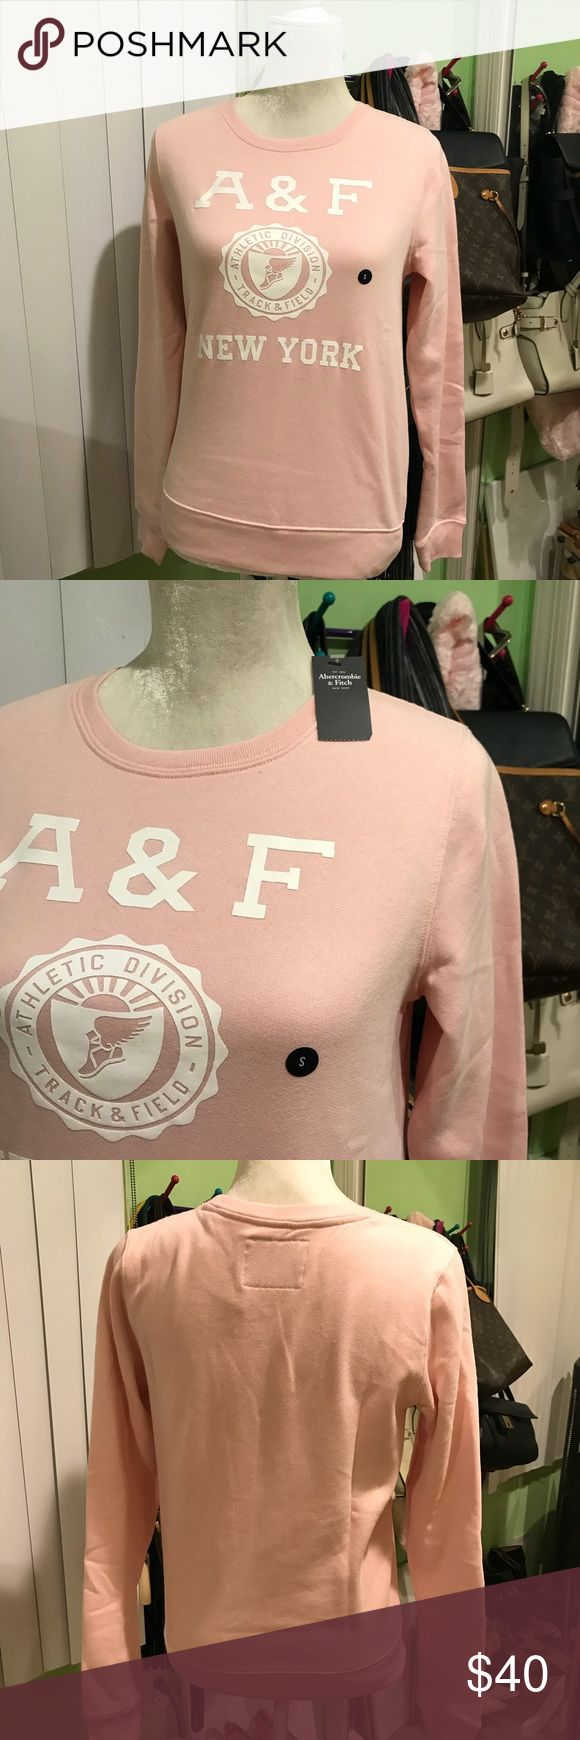 Abercrombie and Fitch Pink Sweatshirt New with tags  Really soft  Abercrombie and Fitch New York Athletic Division Track and Field Pink Sweatshirt Abercrombie & Fitch Tops Sweatshirts & Hoodies